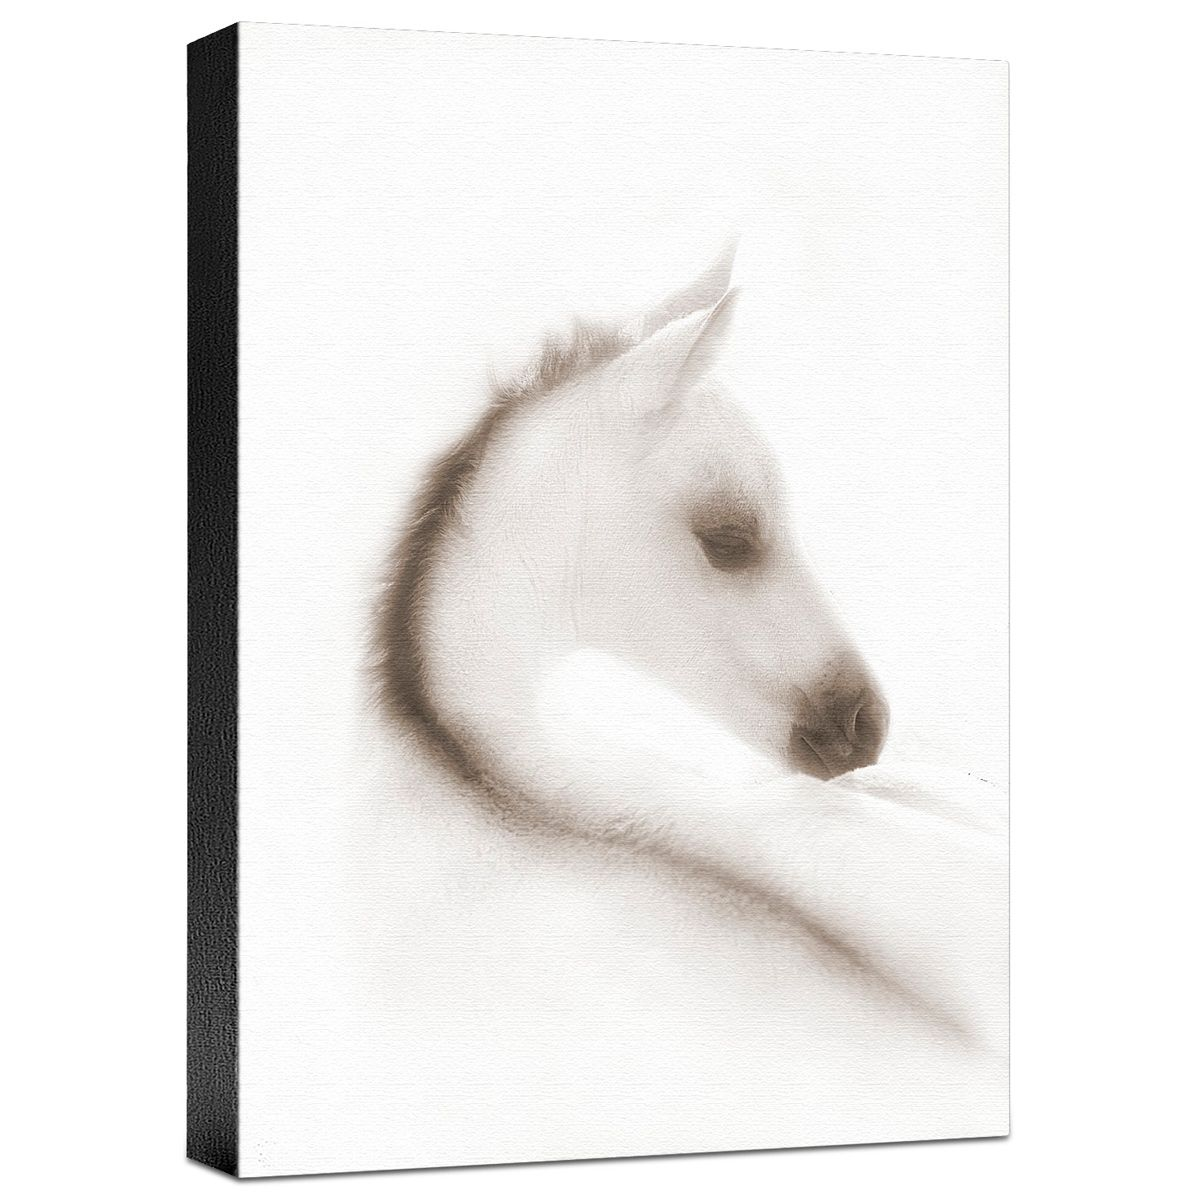 Snow White Gallery Wrapped Canvas